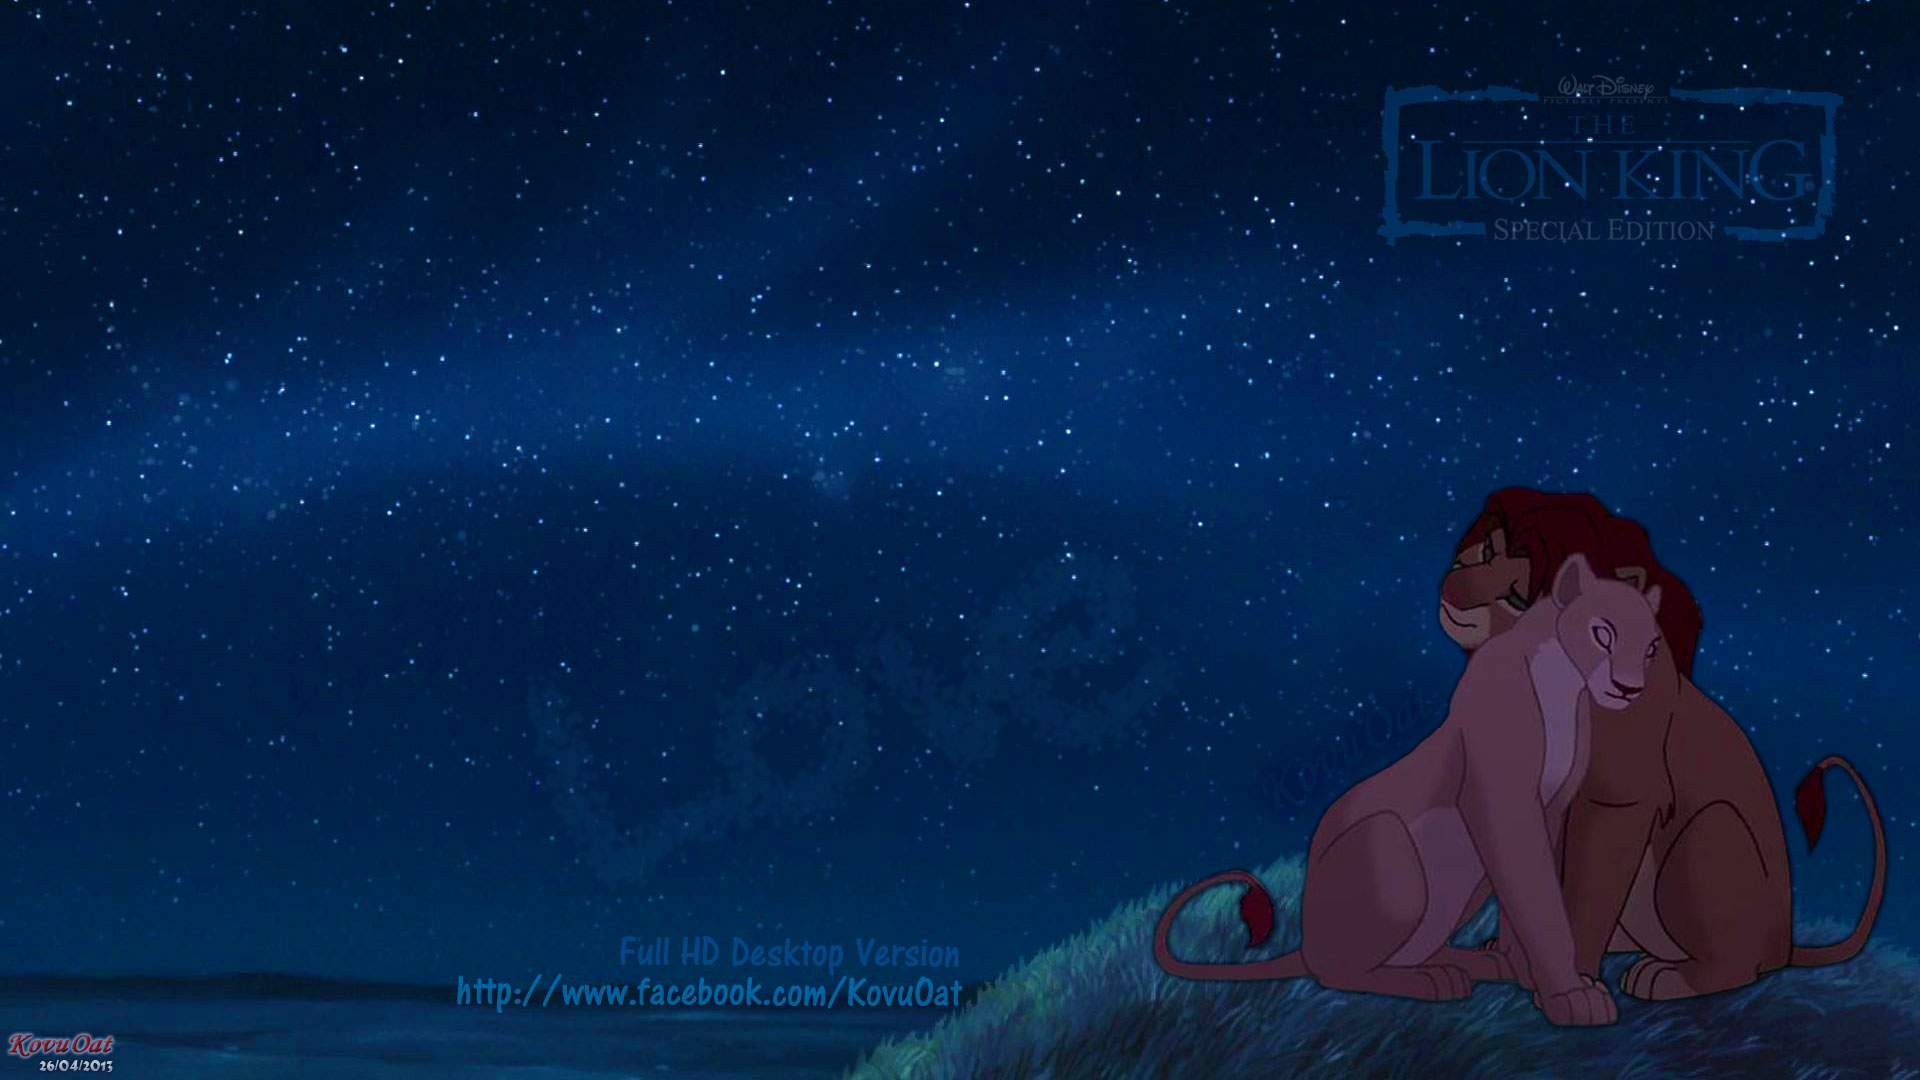 Kovu Oat Images Tlk Simba Nala Dark Night Love Wallpaper Hd Hd